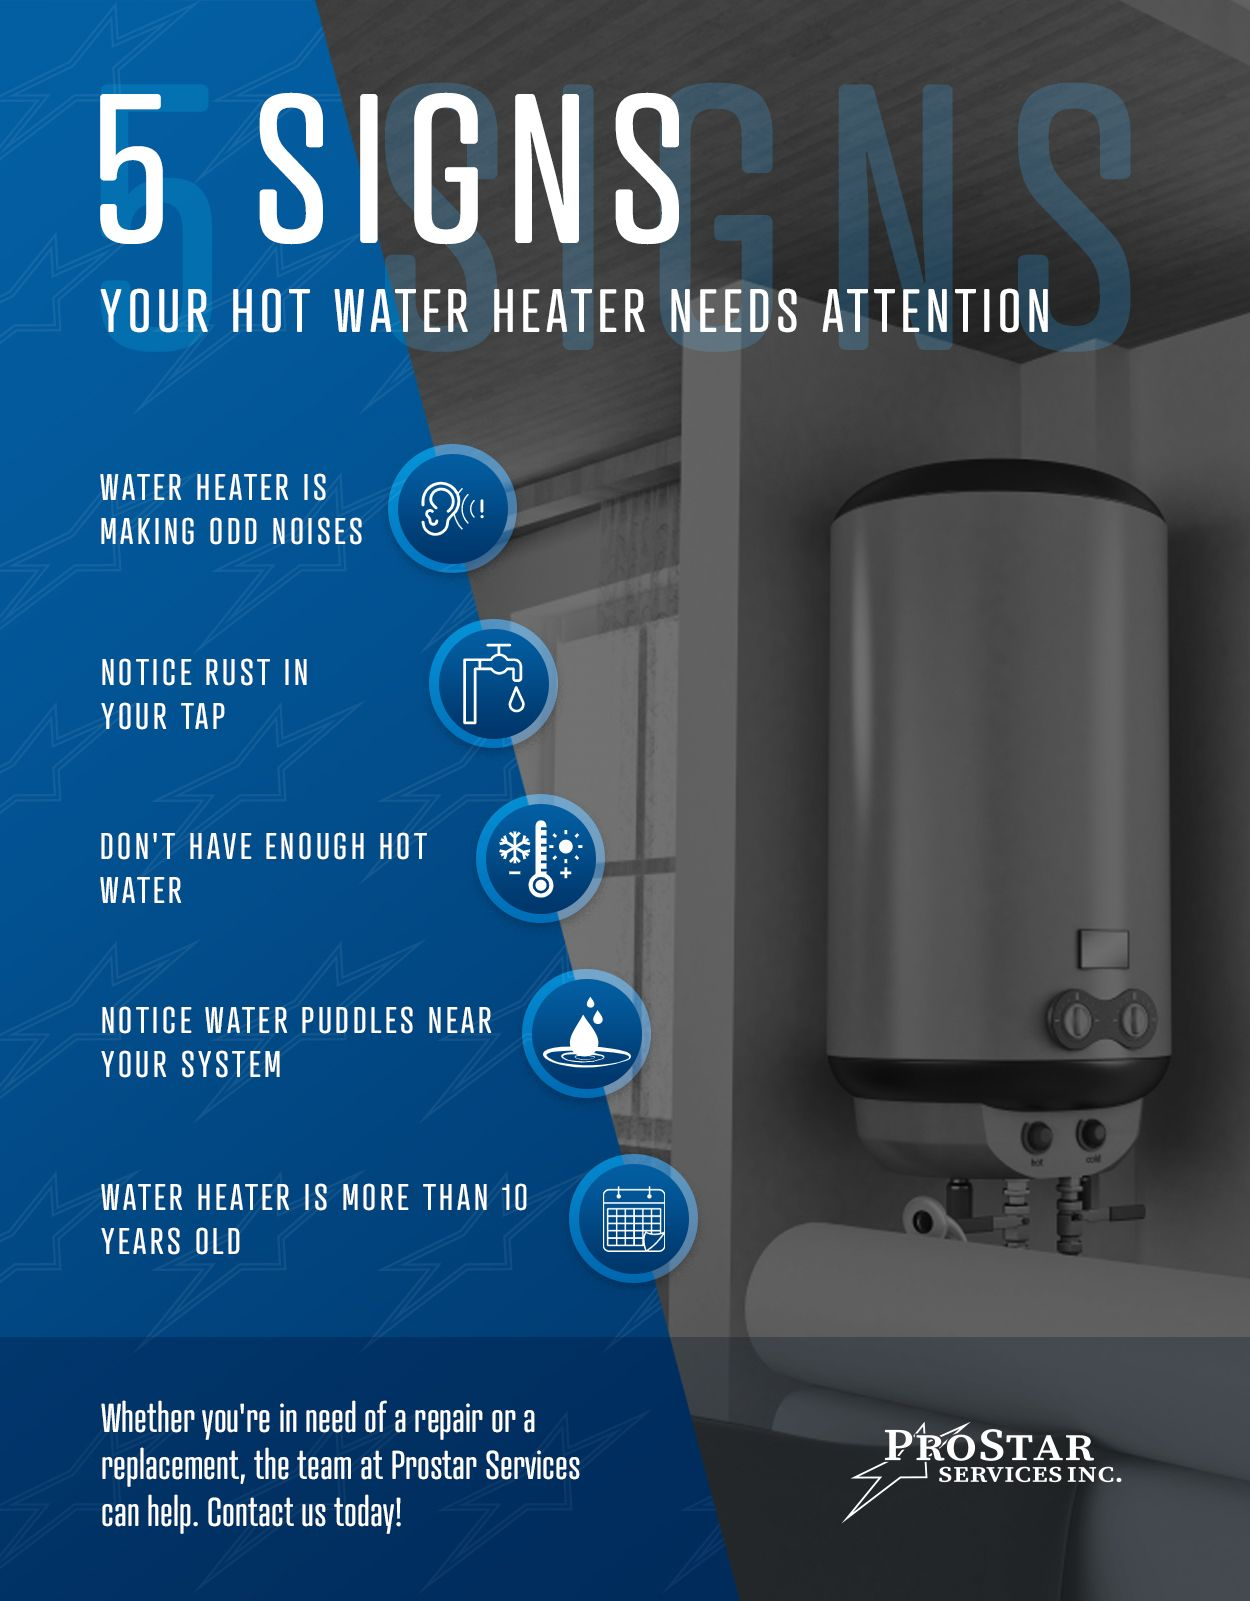 5 Signs Your Hot Water Heater Needs Attention.jpg